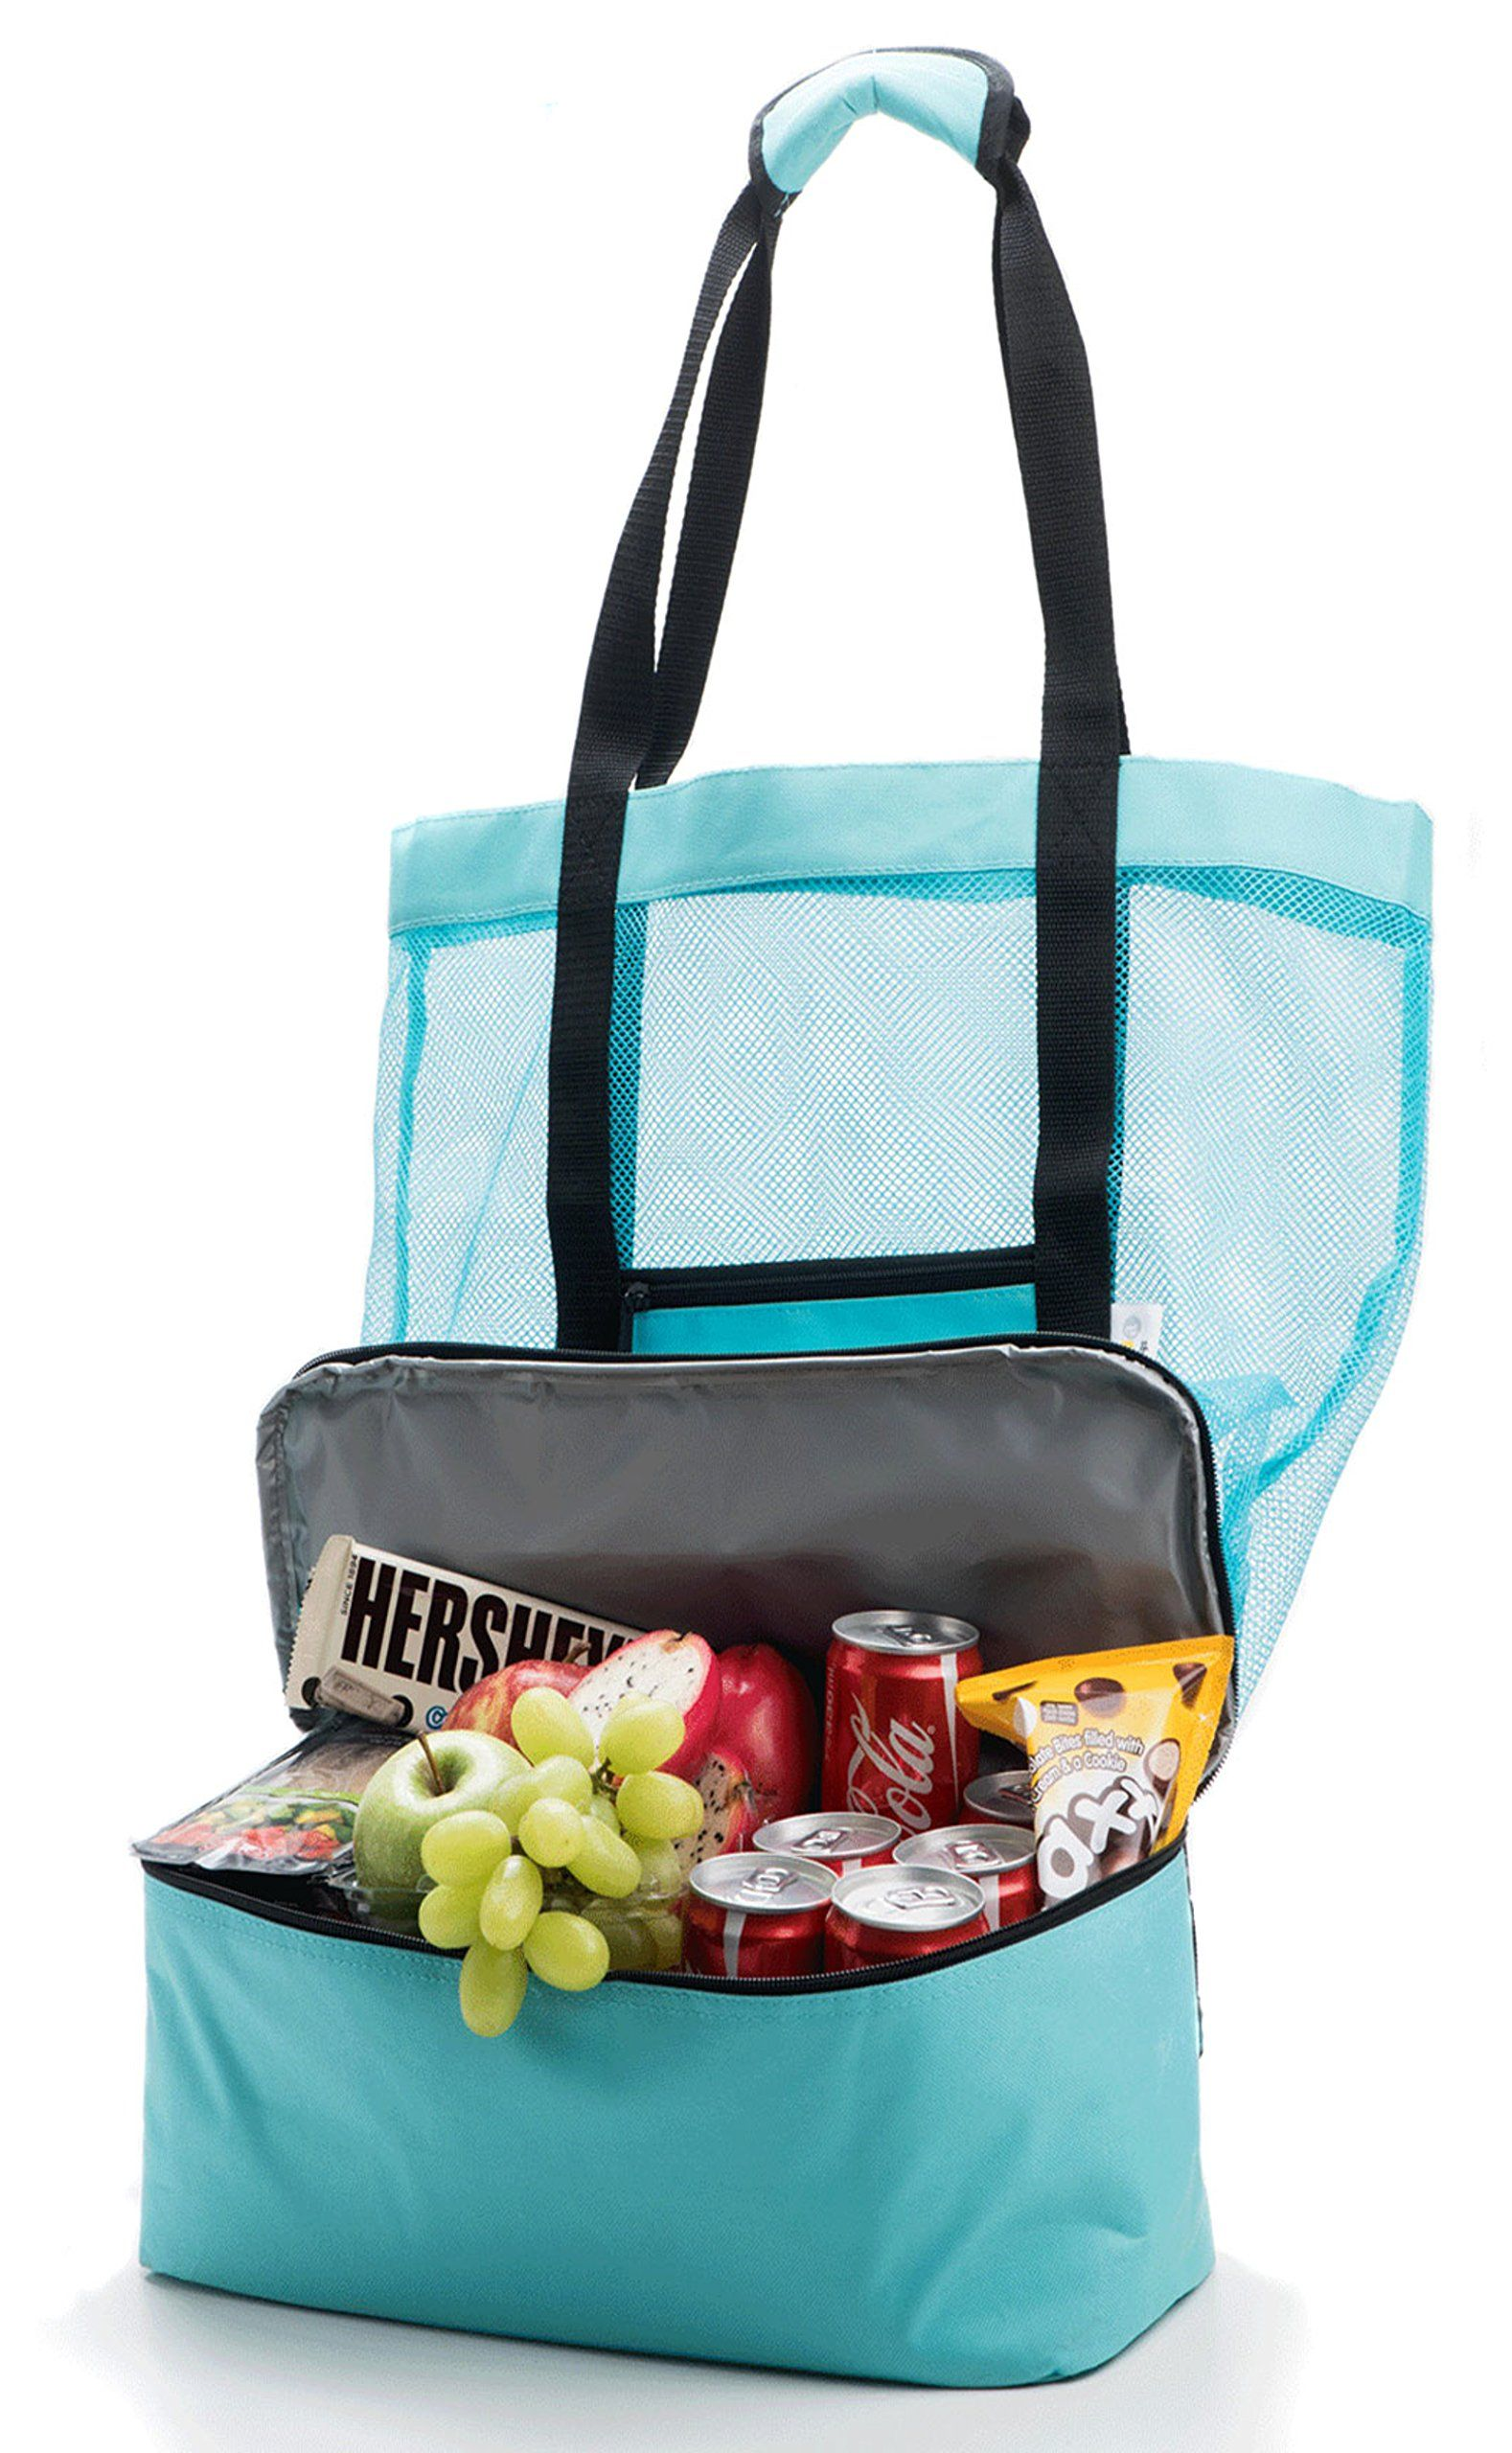 Premium Beach Tote Bag With Insulated Cooler | Durable ...